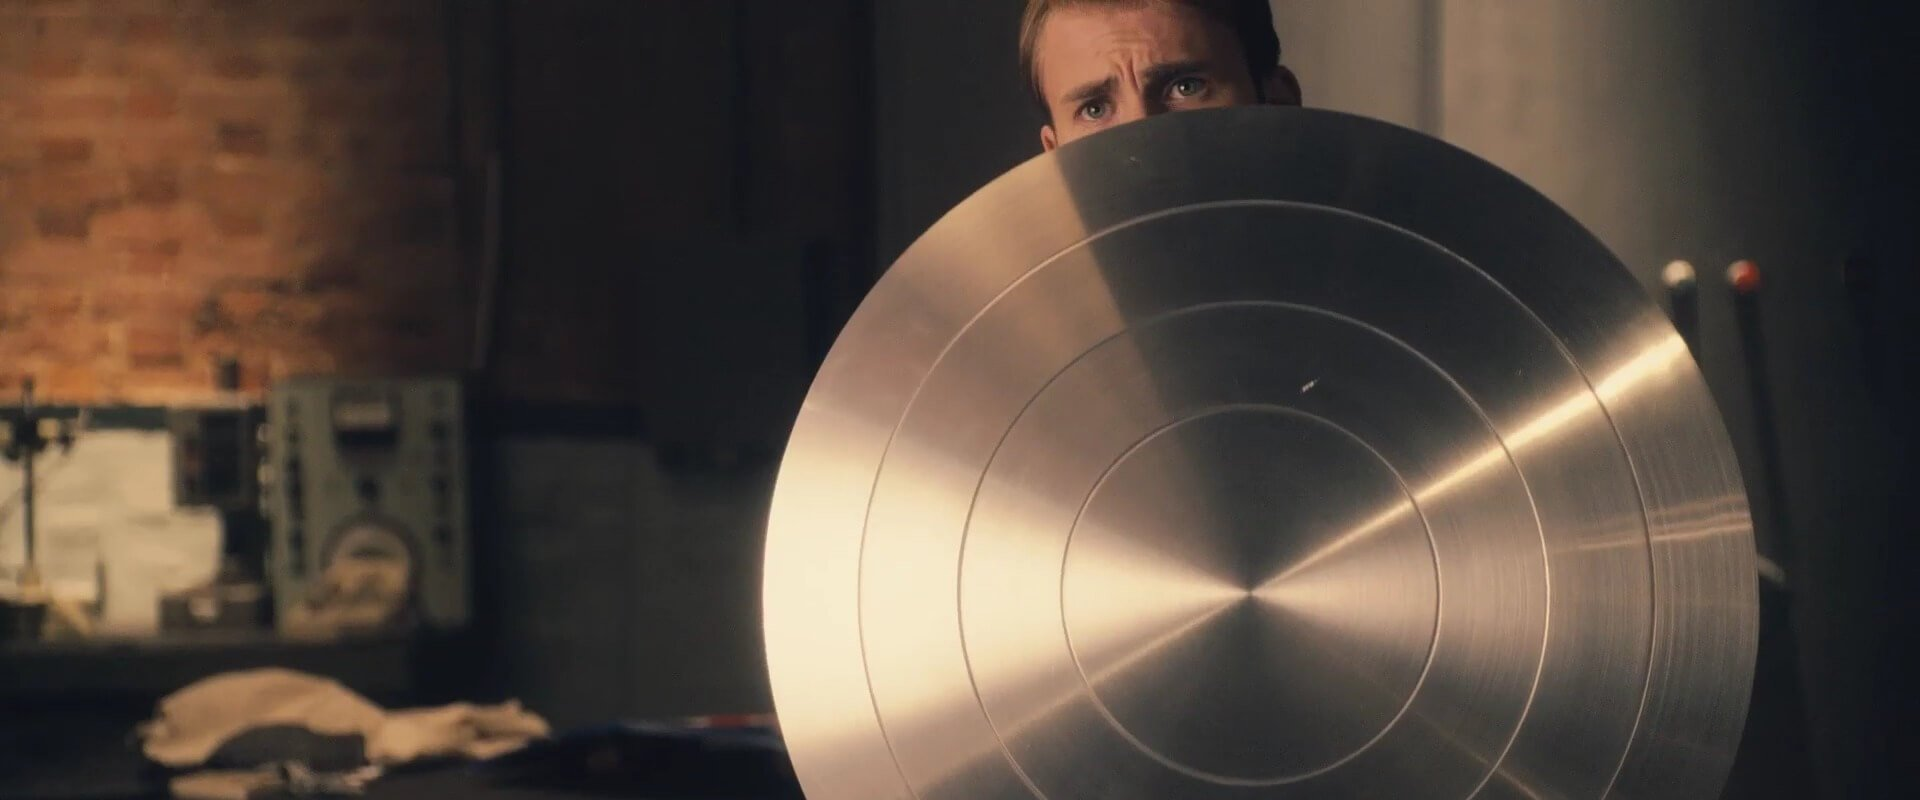 Hyperloop Plans to Cover Pods in Vibranium